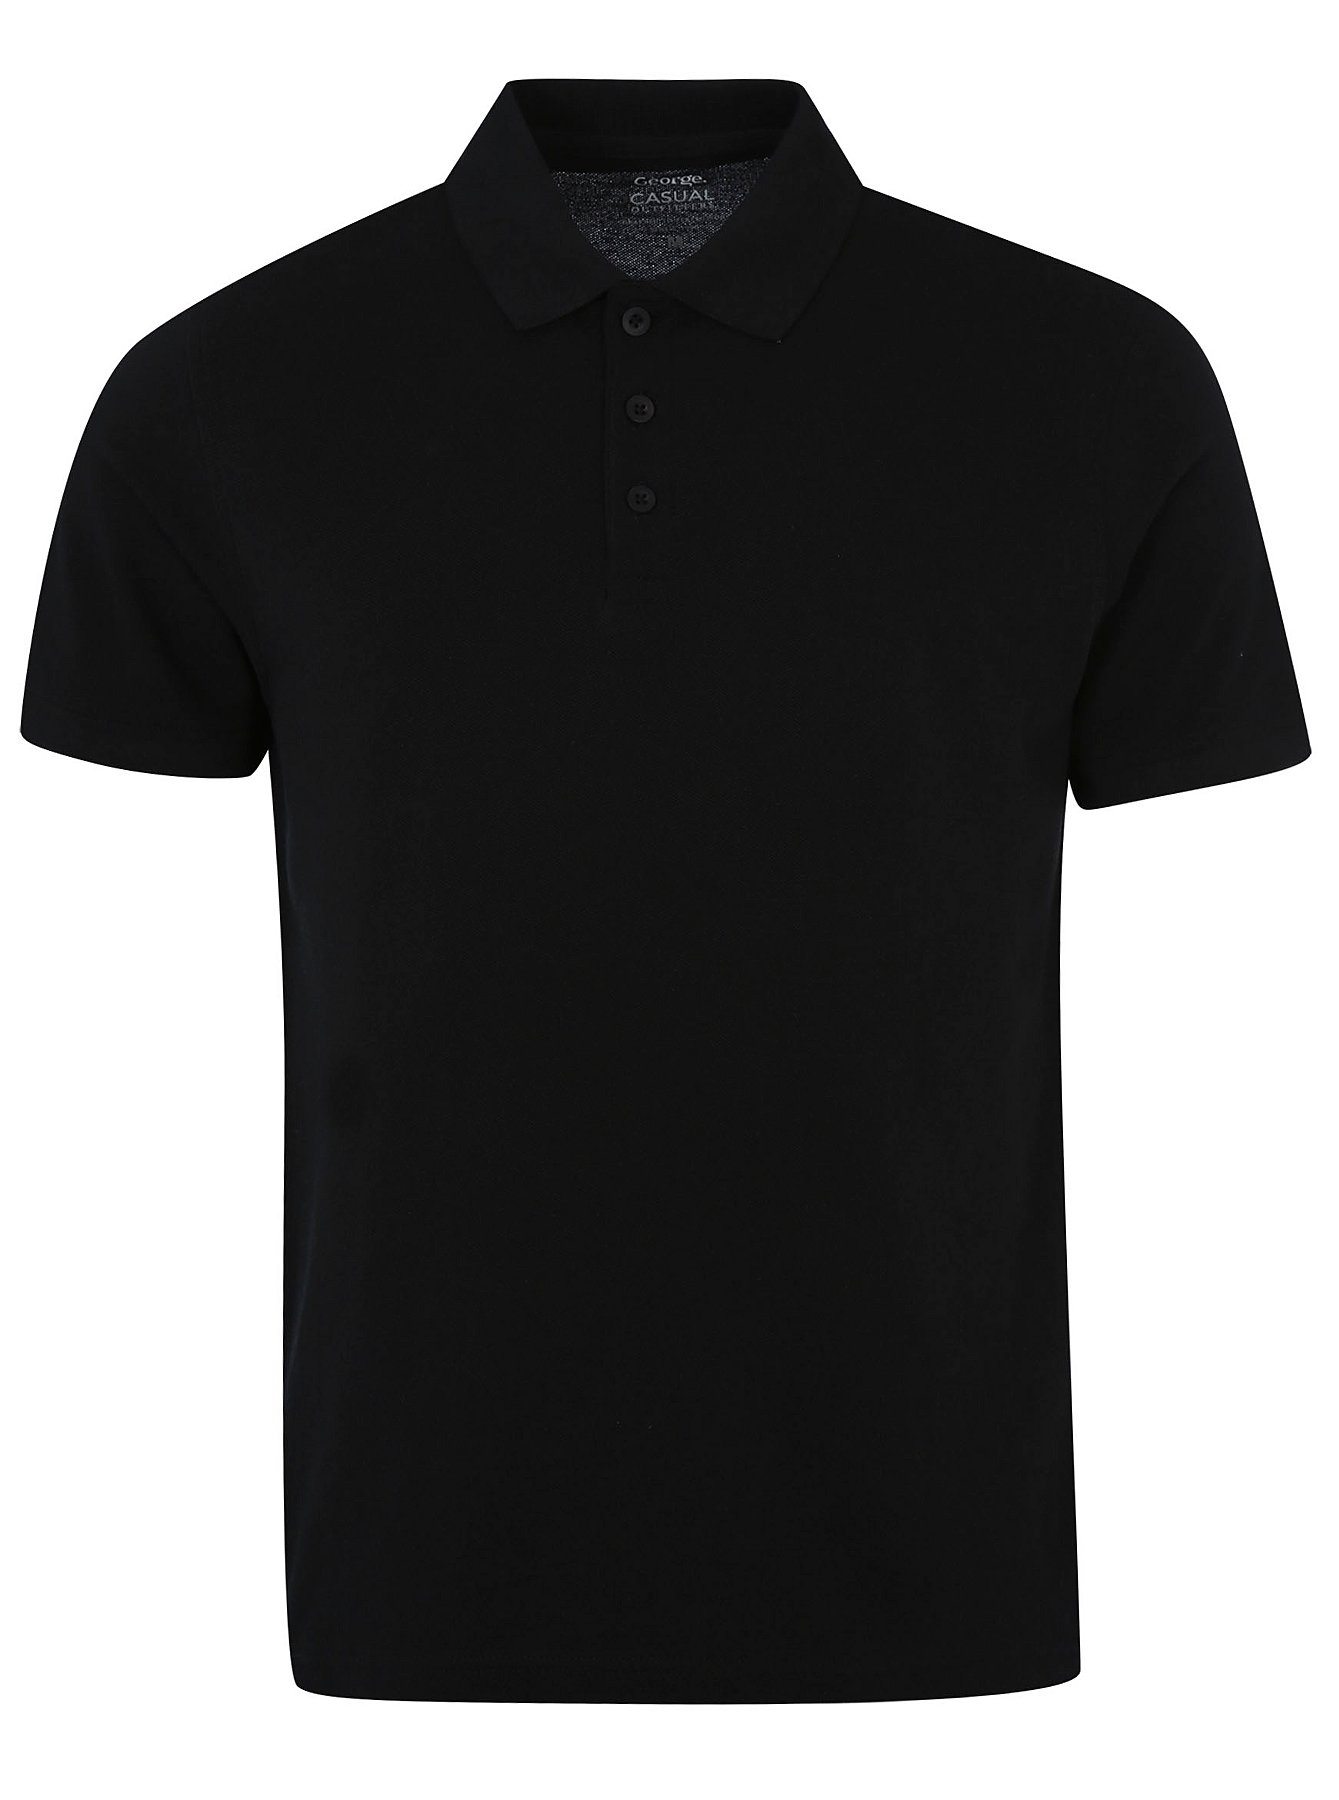 Men\'s Polo Shirts in Black | George at ASDA